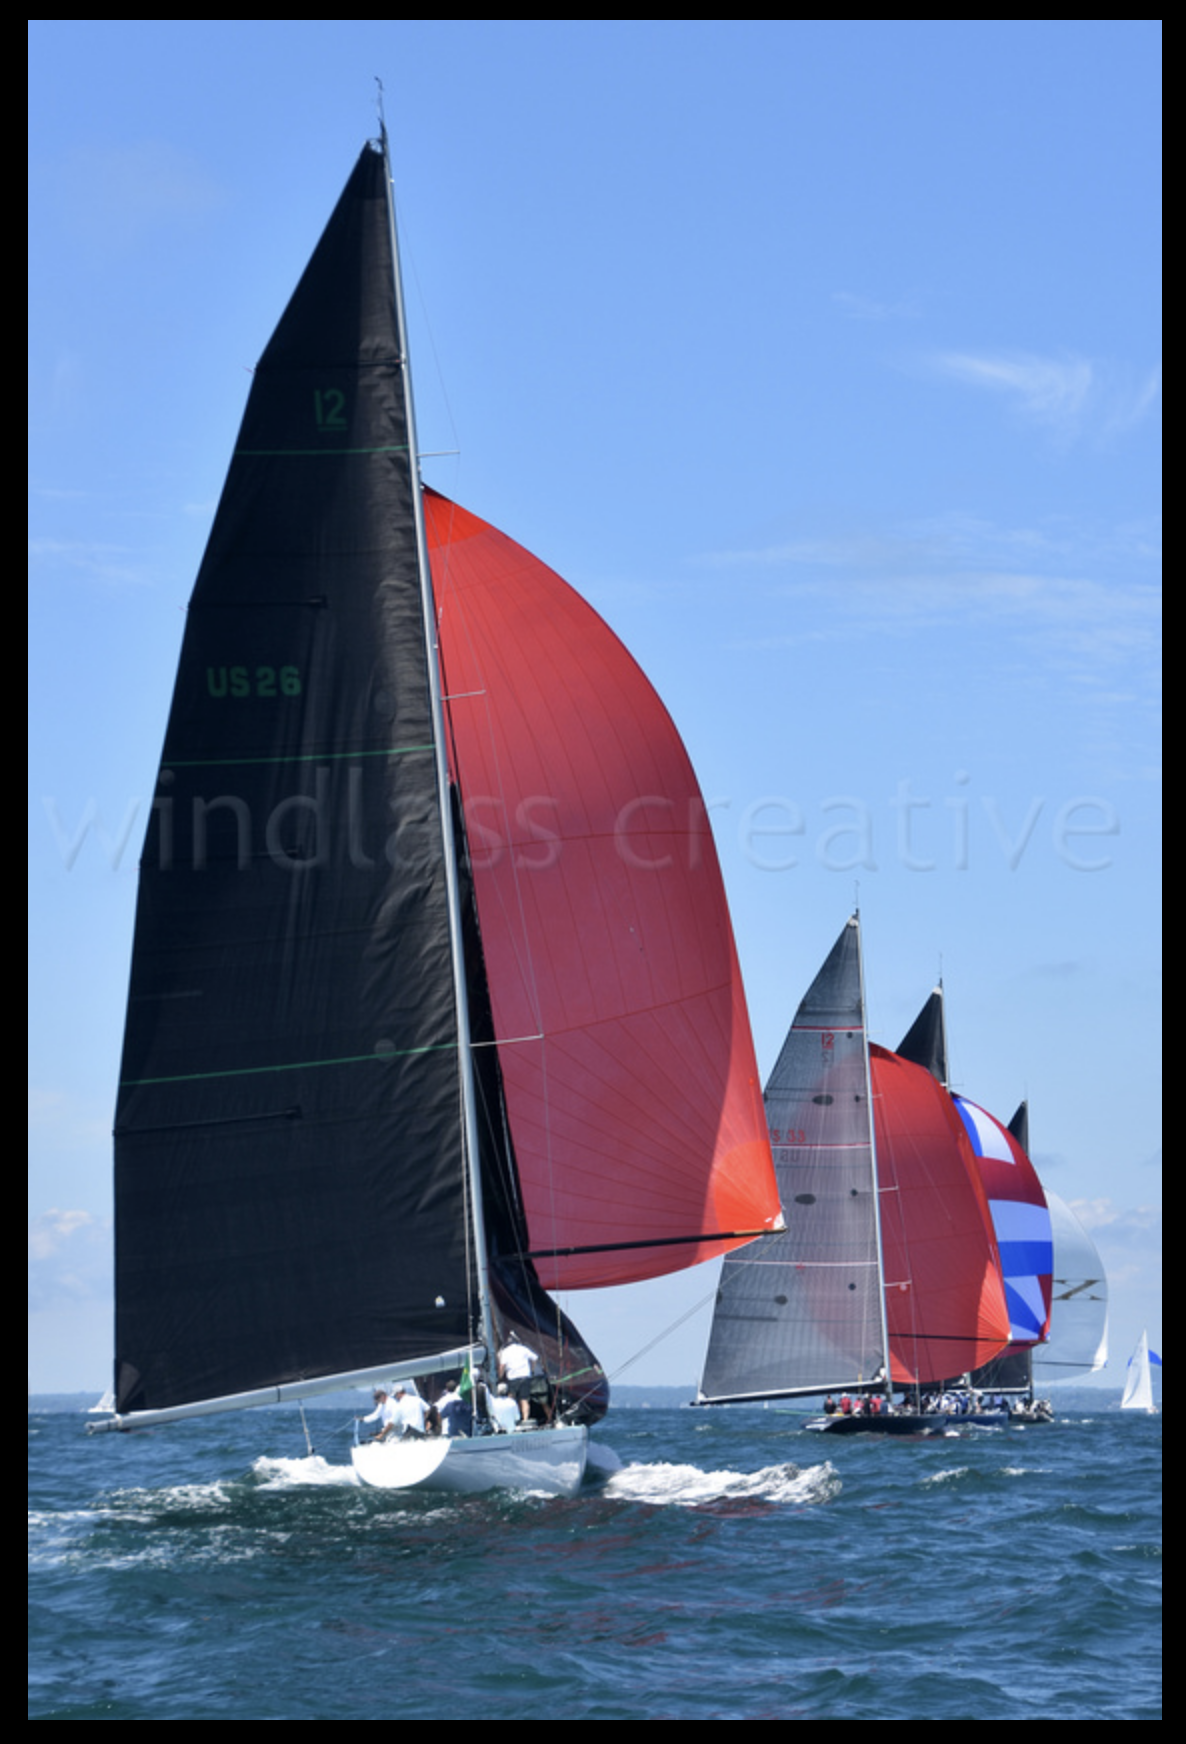 12 Metre Yachts sailing at New York Yacht Club Race Week, Newport, Rhode Island, 7/21/18